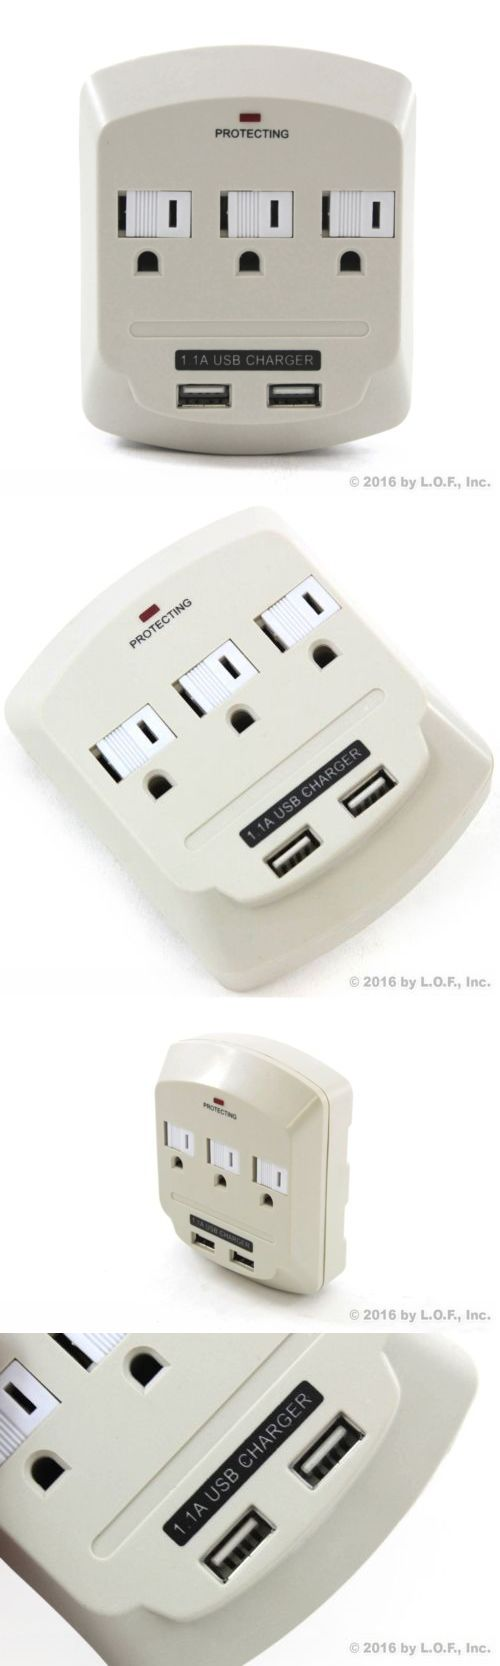 Surge Protectors Power Strips: 48 Pack 3 Outlet Power Surge Protector 2 Usb Charging Slim Wall Tap - 900 Joules -> BUY IT NOW ONLY: $150.09 on eBay!